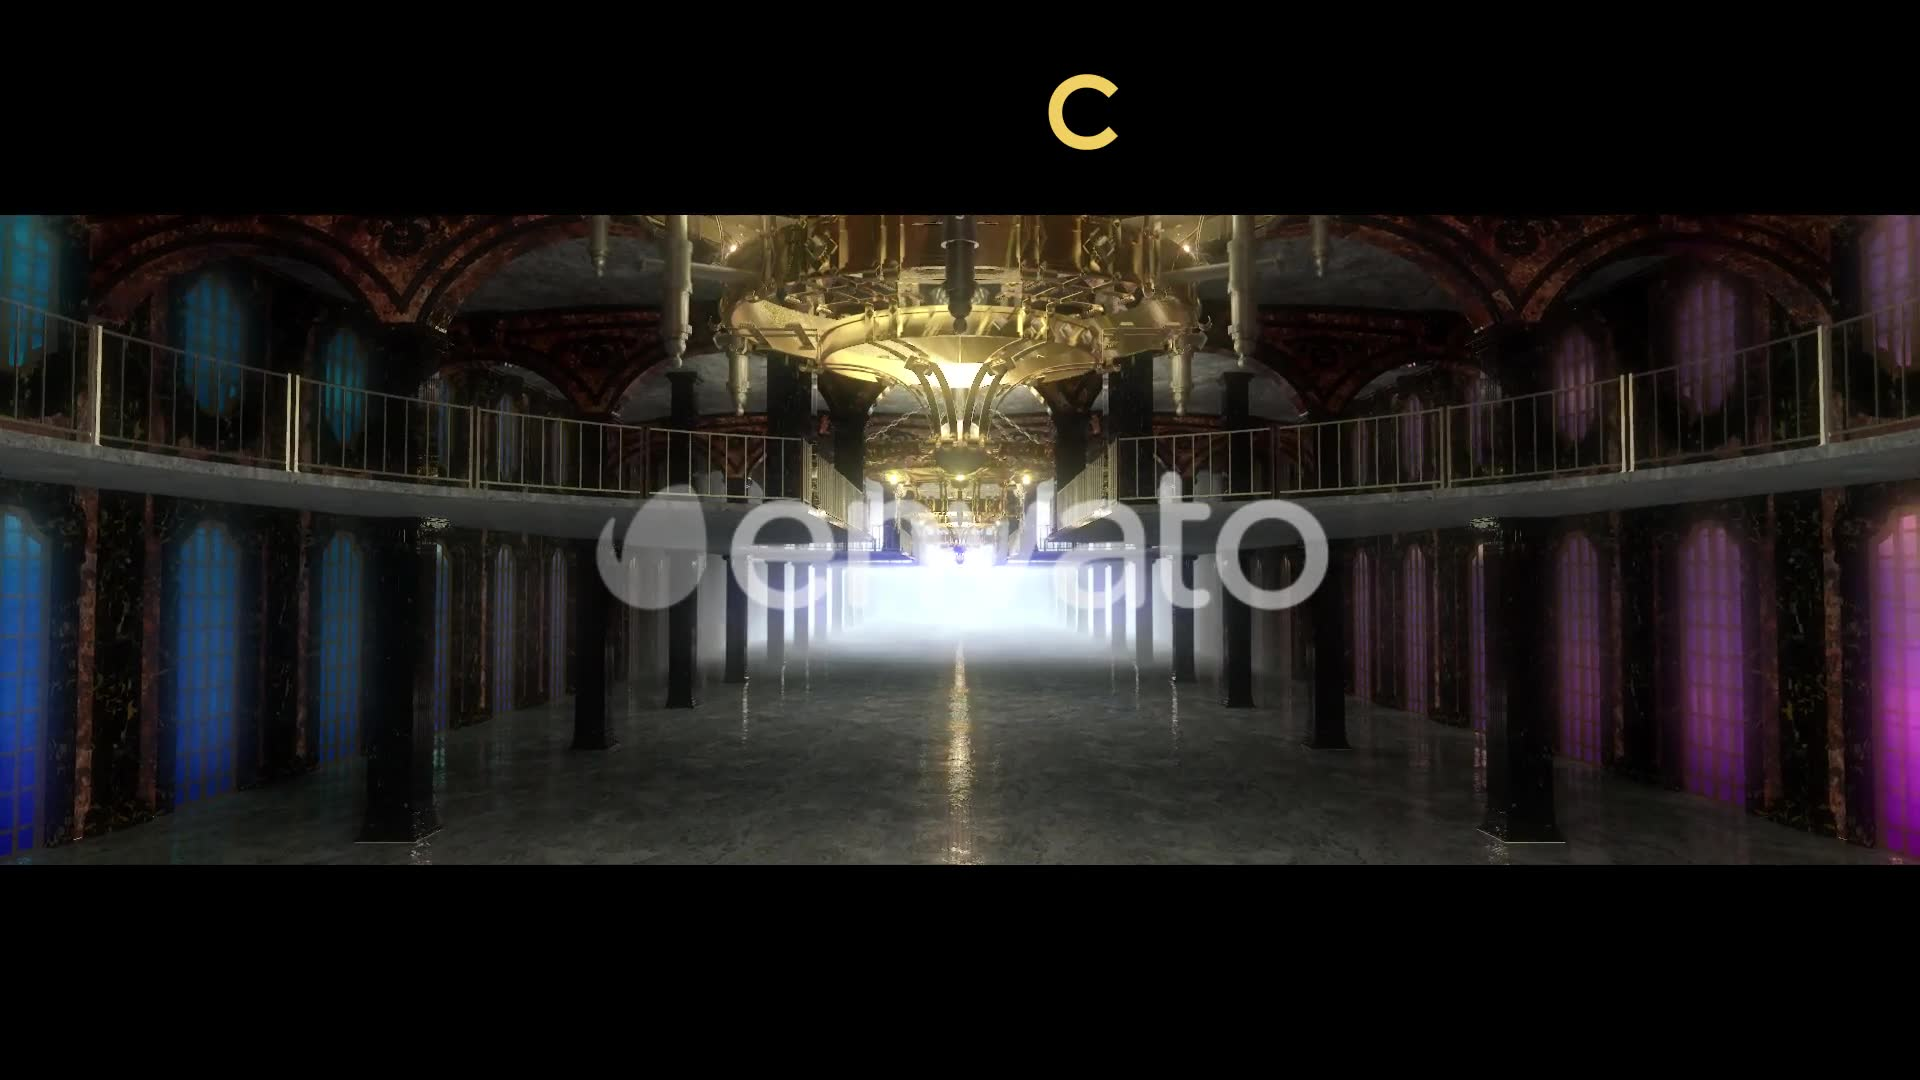 Castle Interior Videohive 22120312 Motion Graphics Image 2